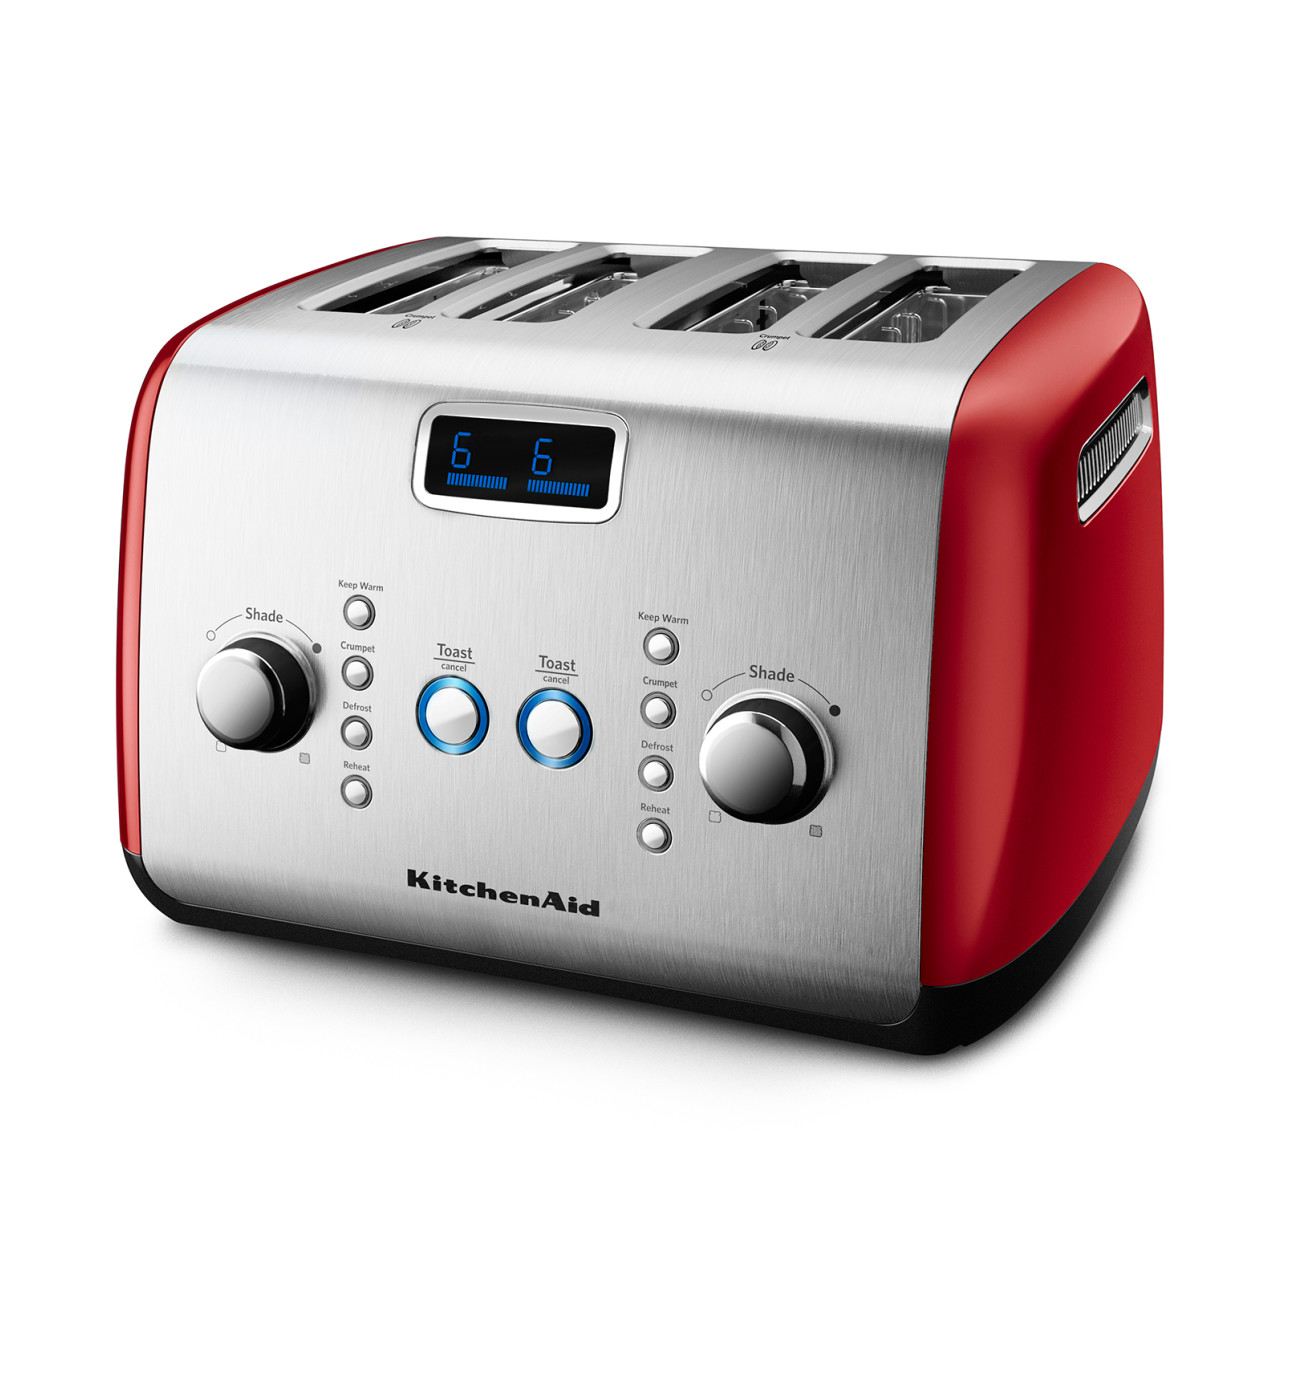 Aldi home sale catalogue special buys stirling 34l microwave oven - Kmt423 4 Slice Red Toaster